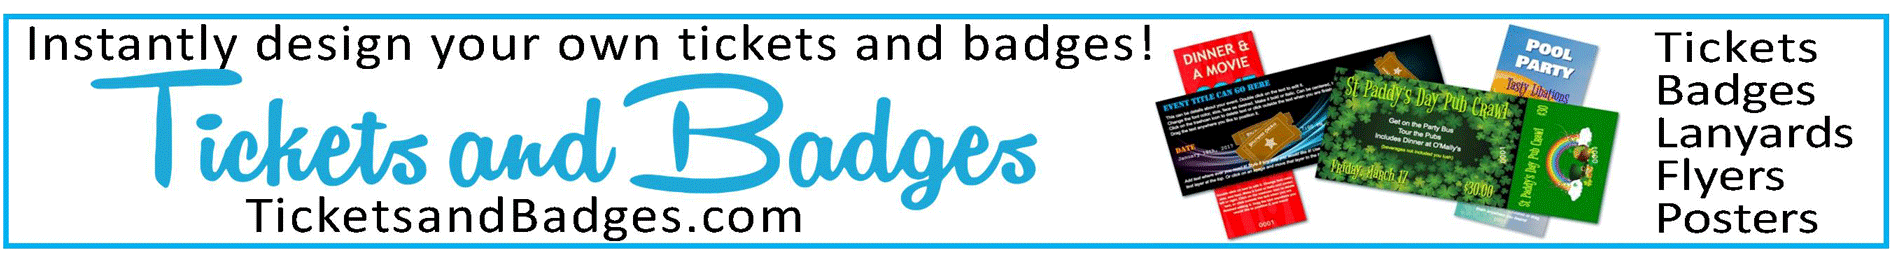 TicketsandBadges.com